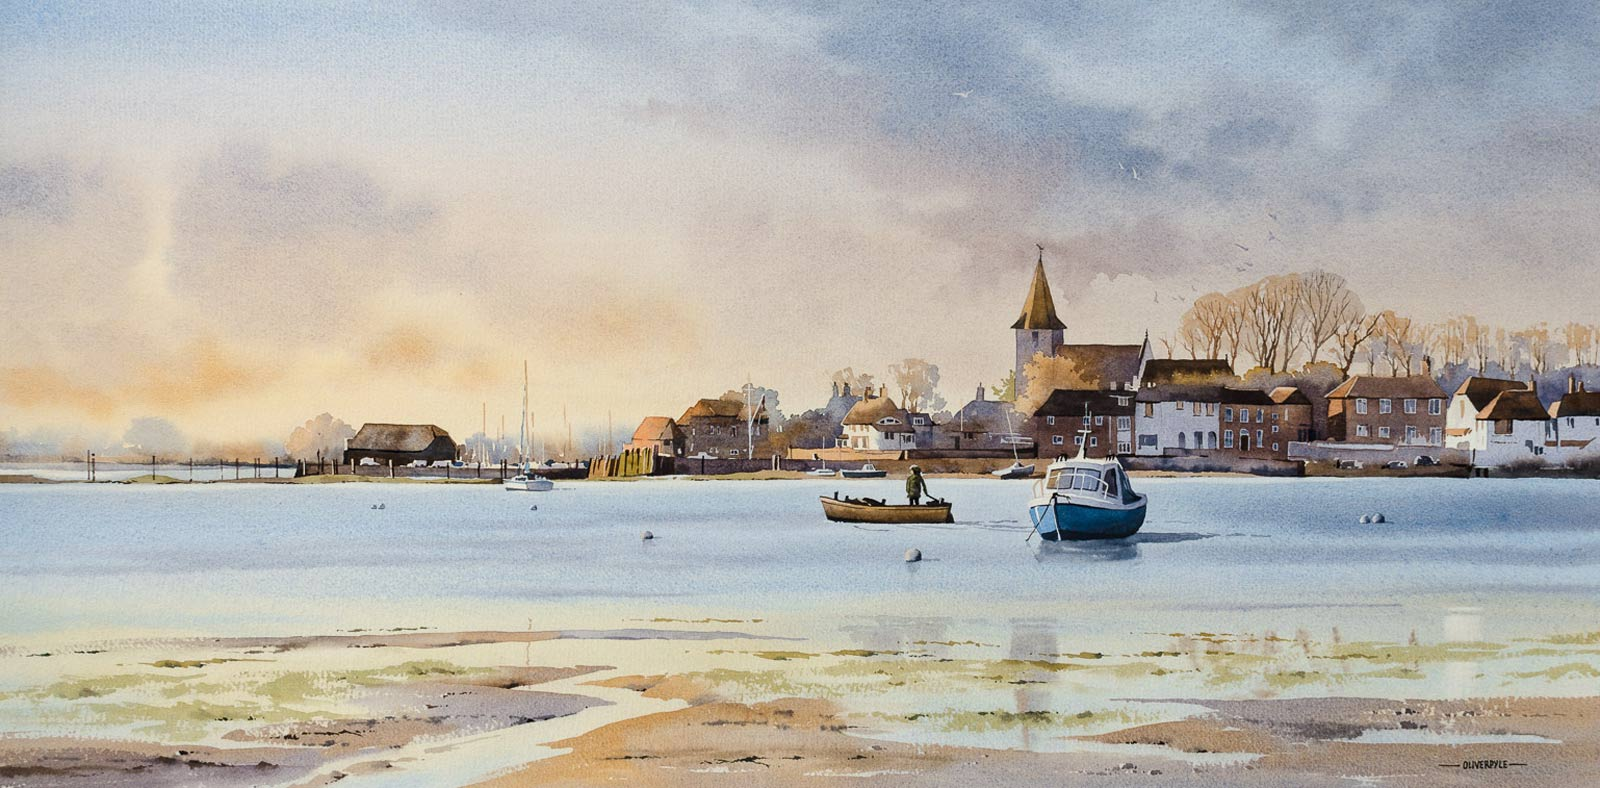 original watercolour painting by artist oliver pyle picturing Bosham harbour at sunset